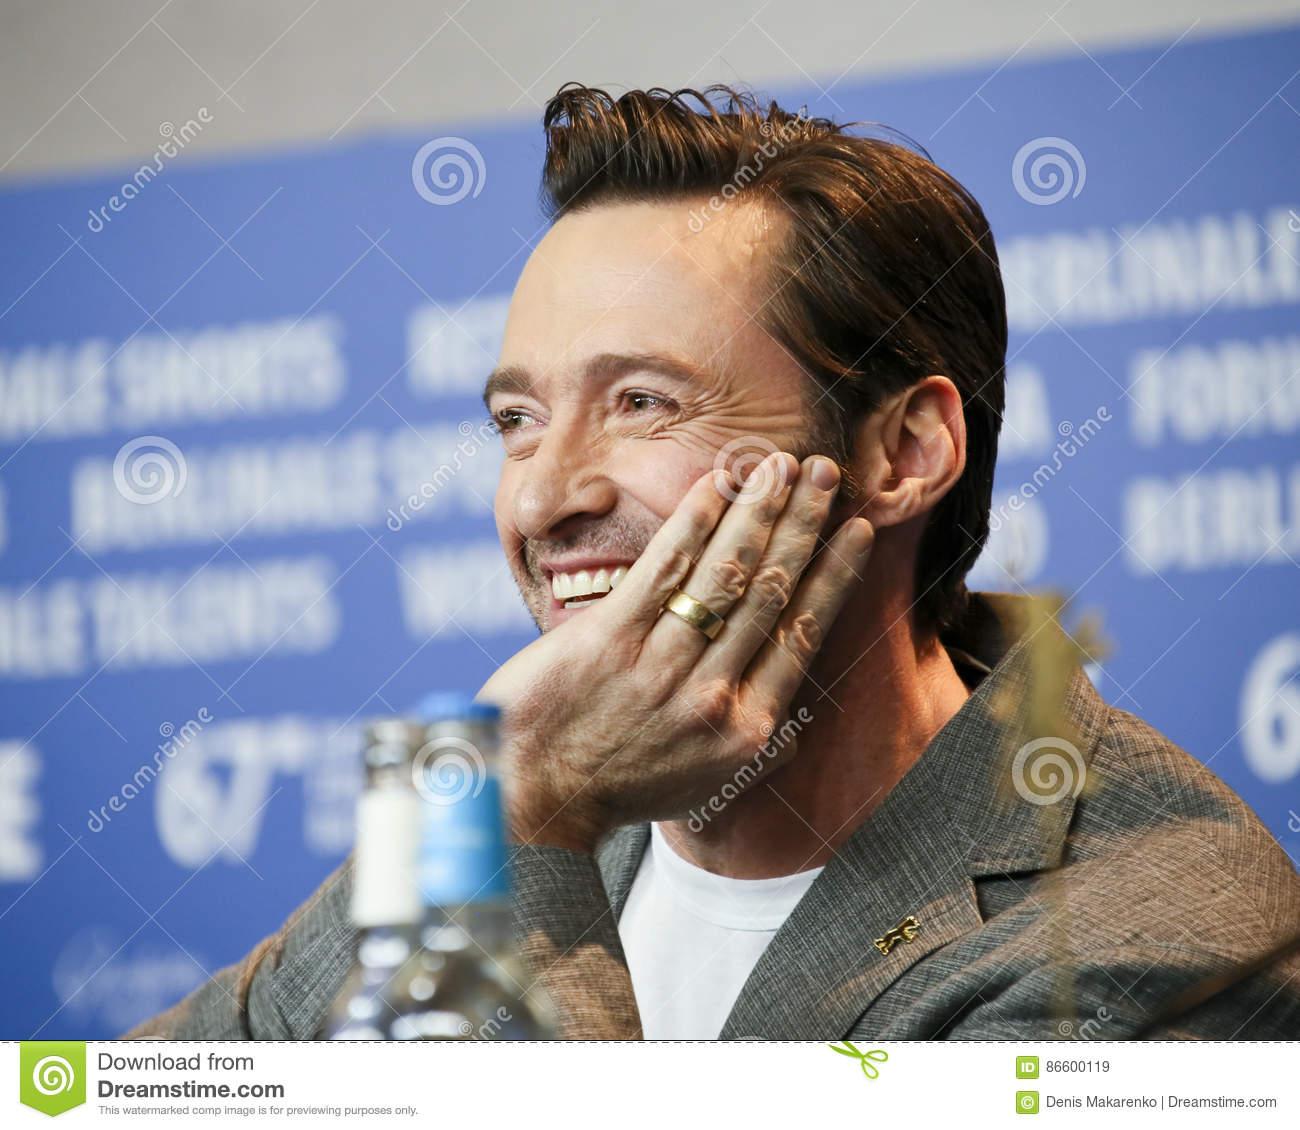 Hugh Jackman Attends The `Logan` Editorial Stock Image ...